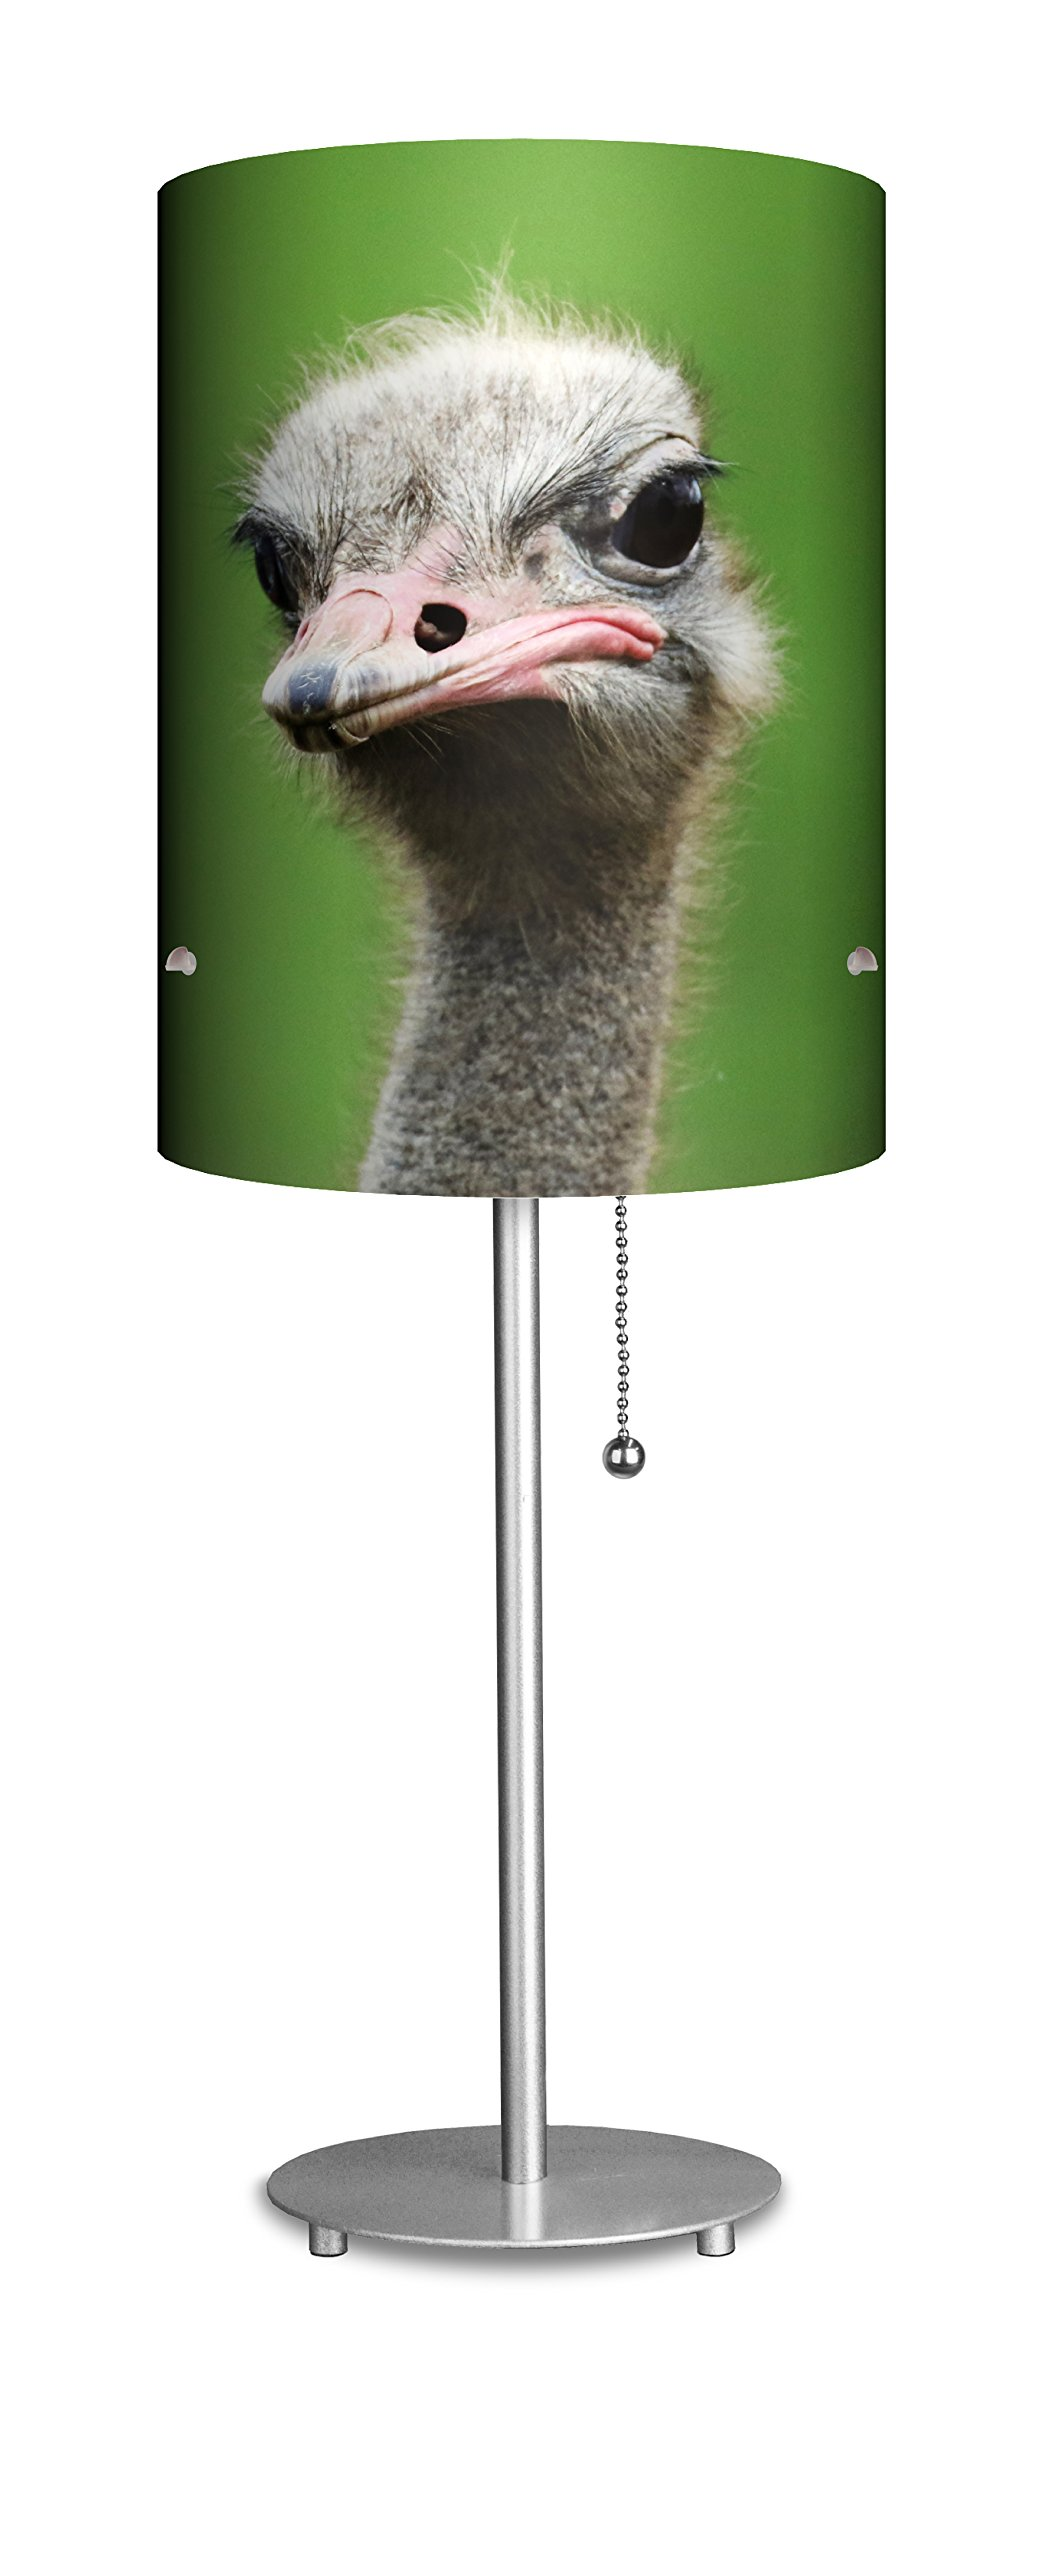 Lampables Animal Kingdom Collection (Suspicious Ostrich) - Table Desk lamp